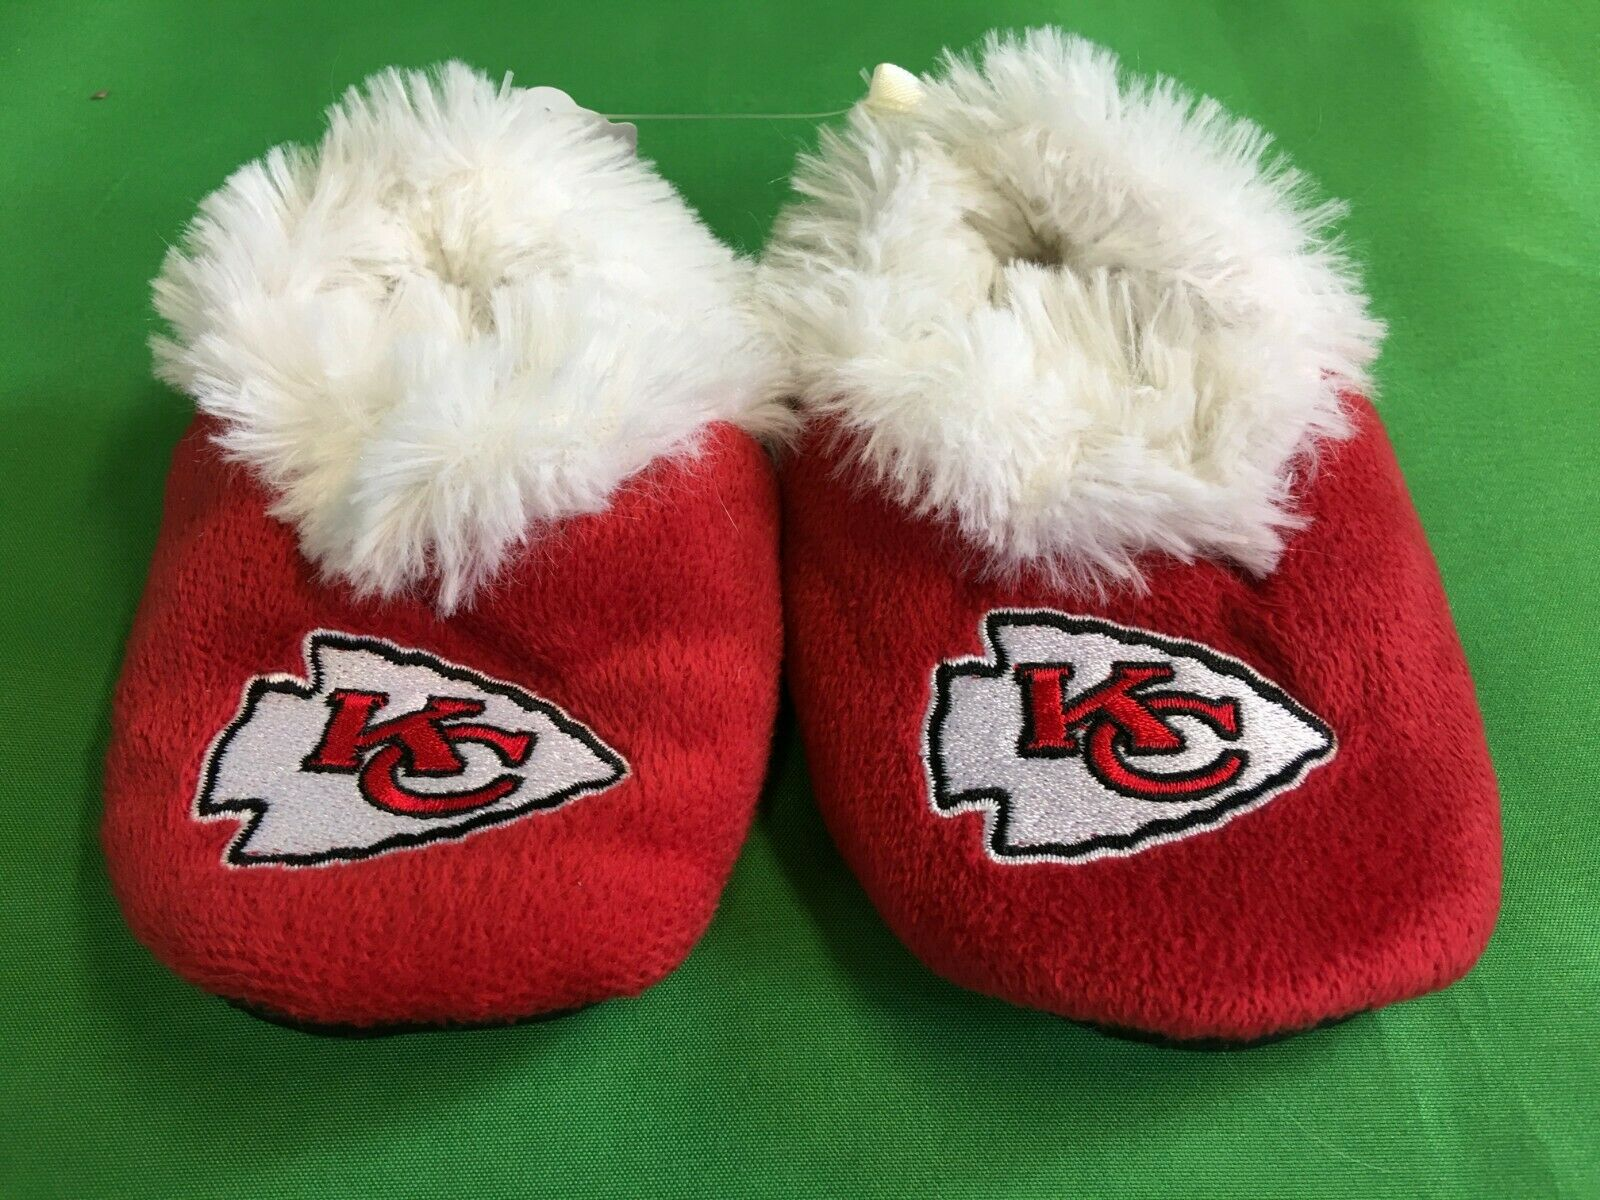 M147/60 NFL Kansas City Chiefs Baby Slippers/Booties XL (9-12 months)